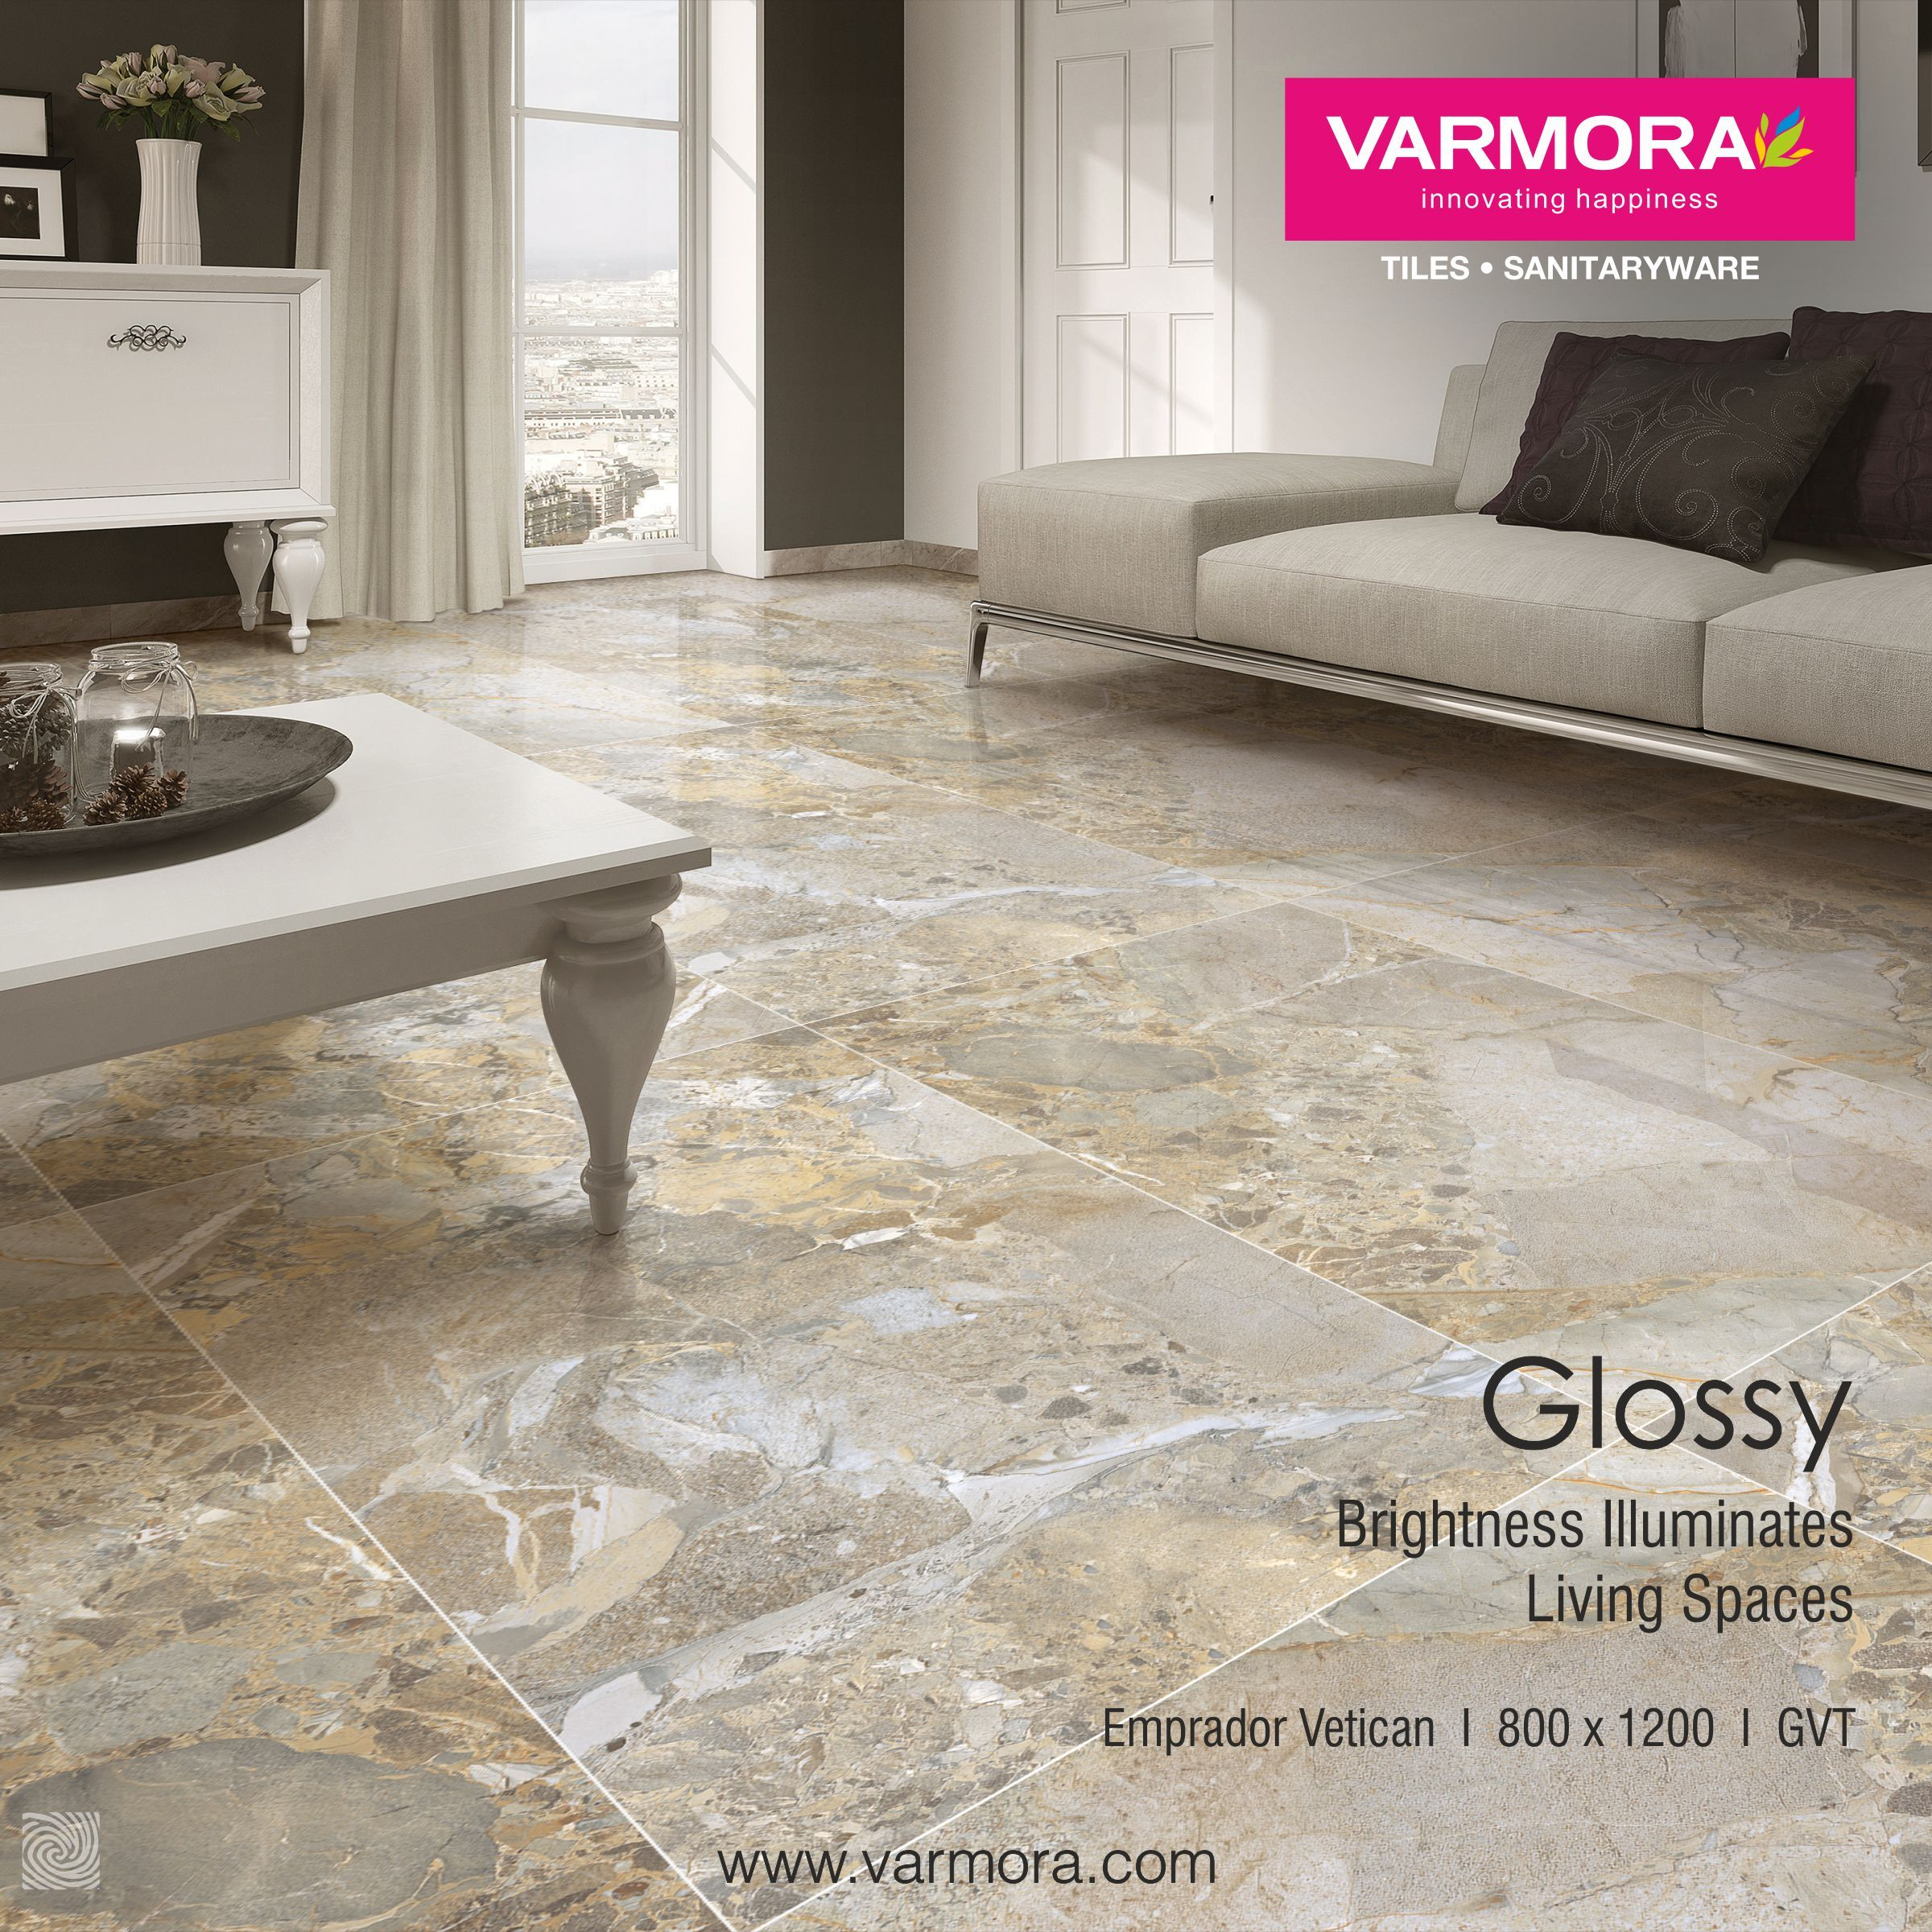 Brightness illuminates living spaces with glossy tiles from brightness illuminates living spaces with glossy tiles from varmora granito glossytiles floortiles ceramic doublecrazyfo Image collections